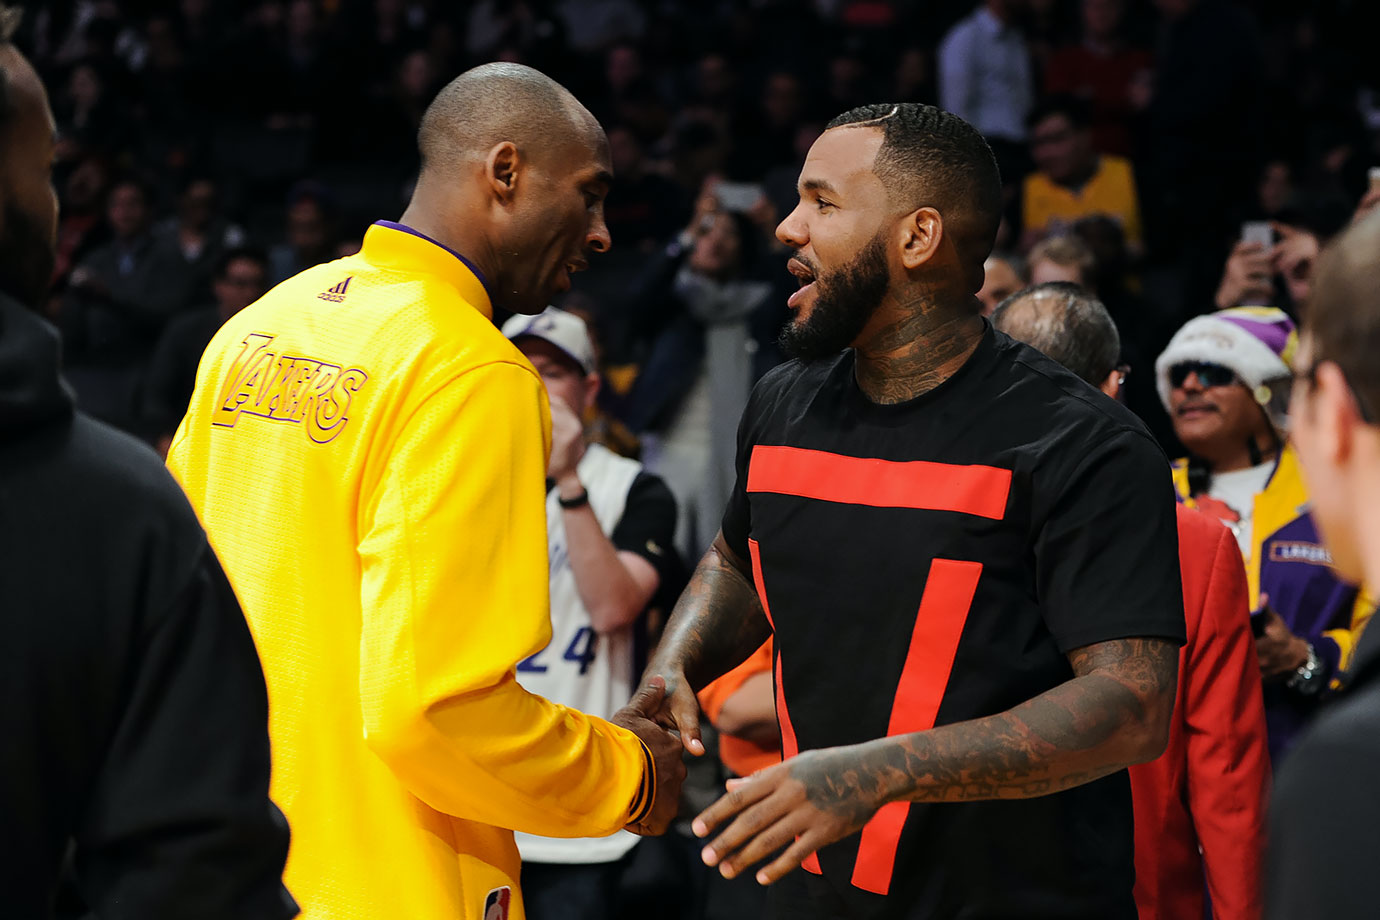 Dec. 17, 2015 — Lakers vs. Rockets at Staples Center in Los Angeles